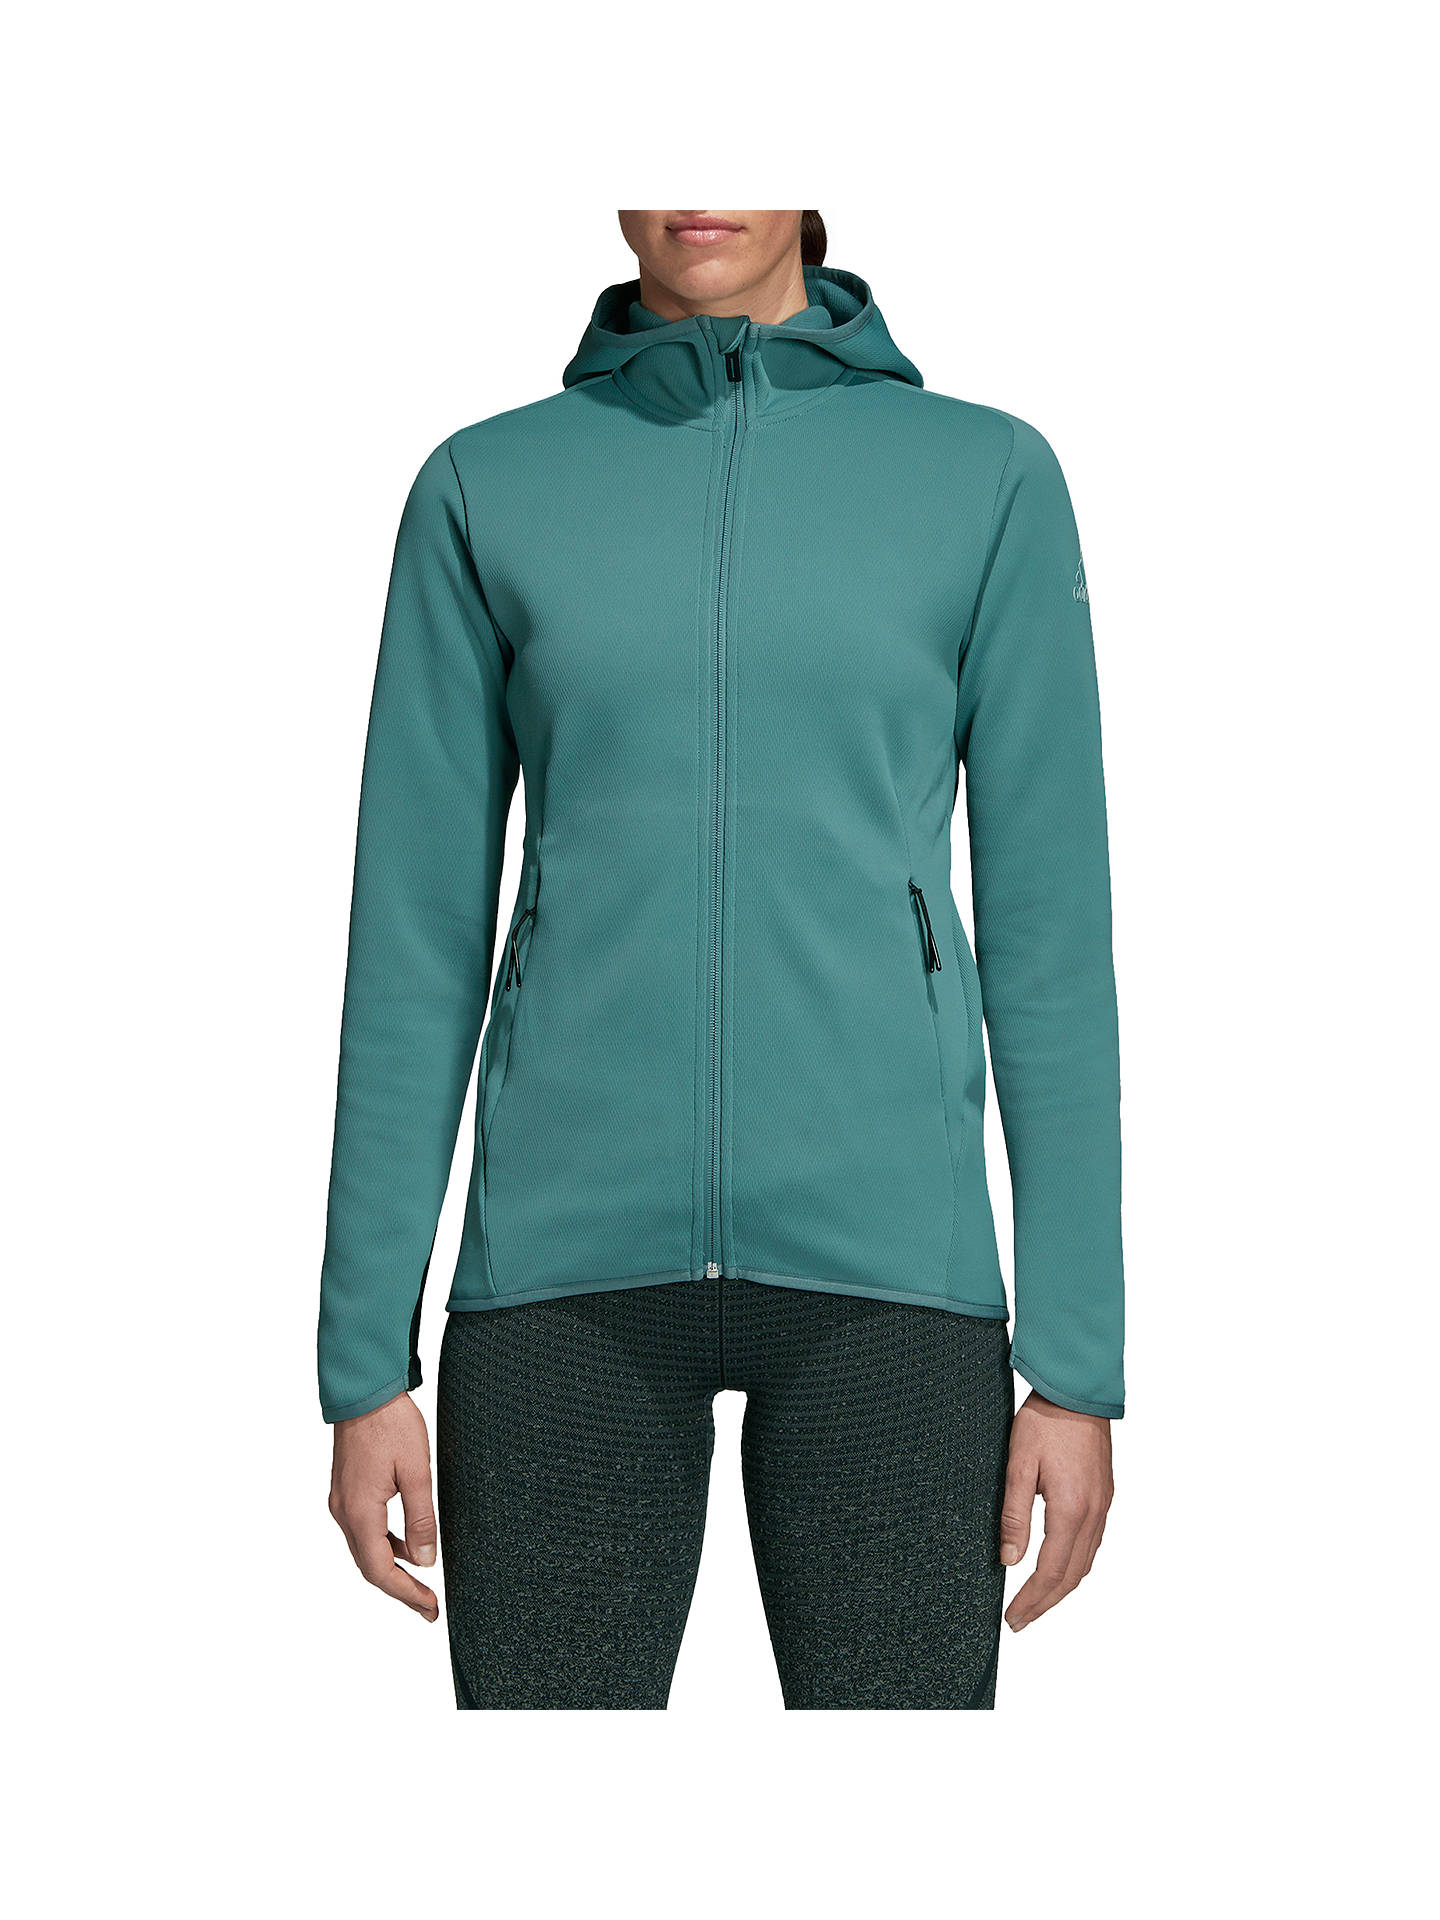 half off 7570d 978cc Buyadidas Freelift Climaheat Hoodie, Raw Green, XS Online at johnlewis.com  ...